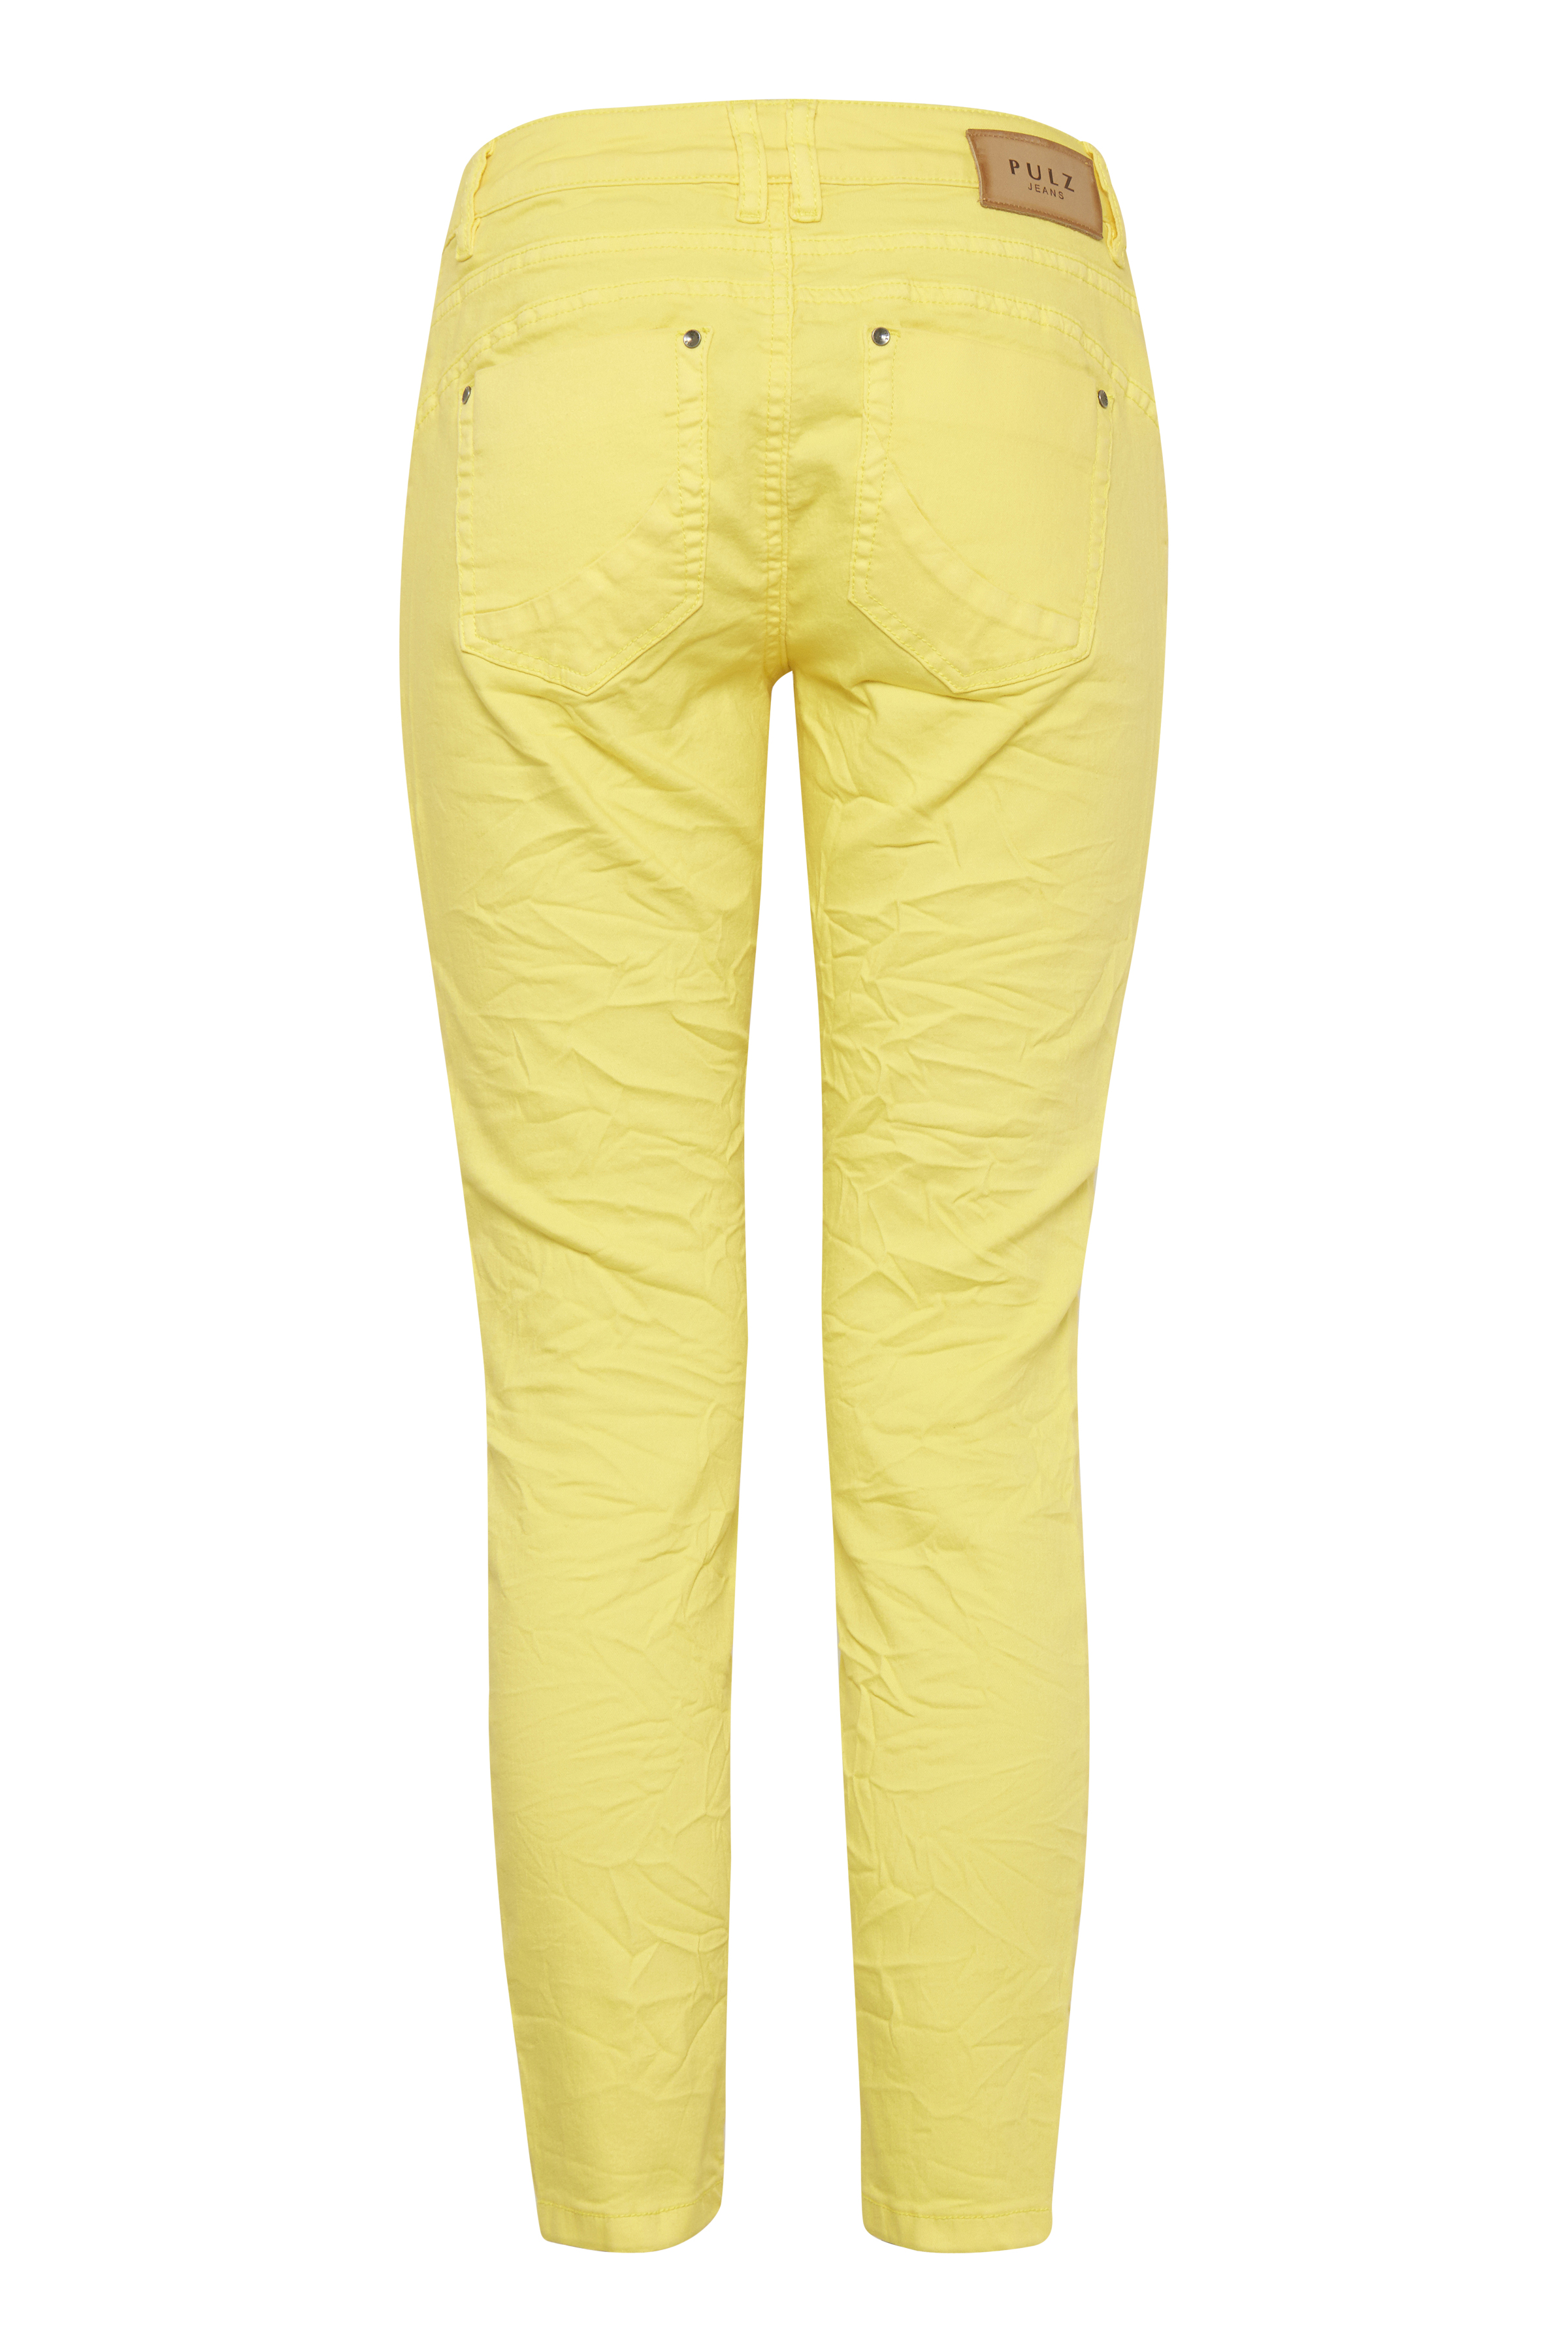 Bright Yellow Pants Suiting – Køb Bright Yellow Pants Suiting fra str. 32-46 her